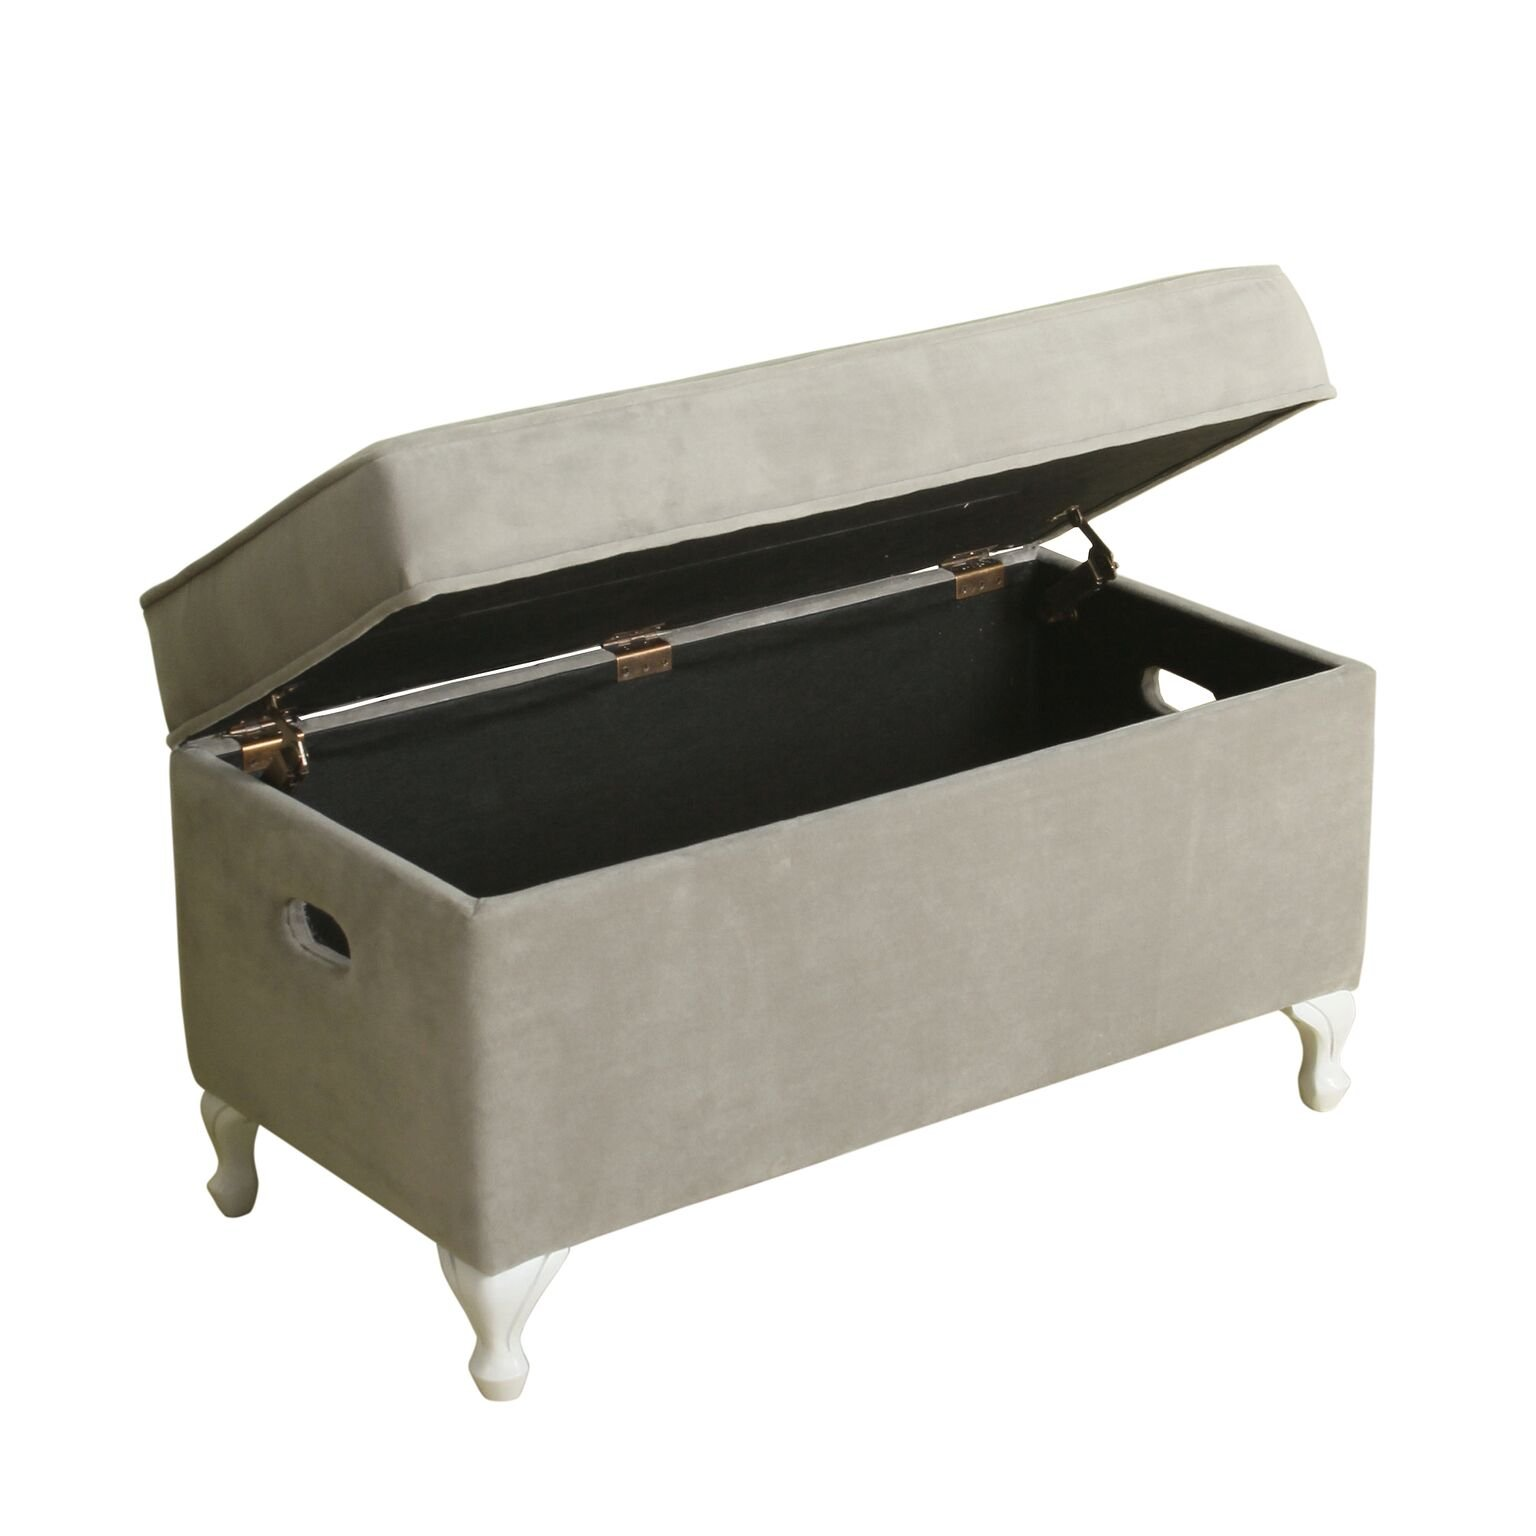 HomePop Diva Youth Velvet Decorative Storage Bench with White Wood Legs, Grey by HomePop (Image #2)